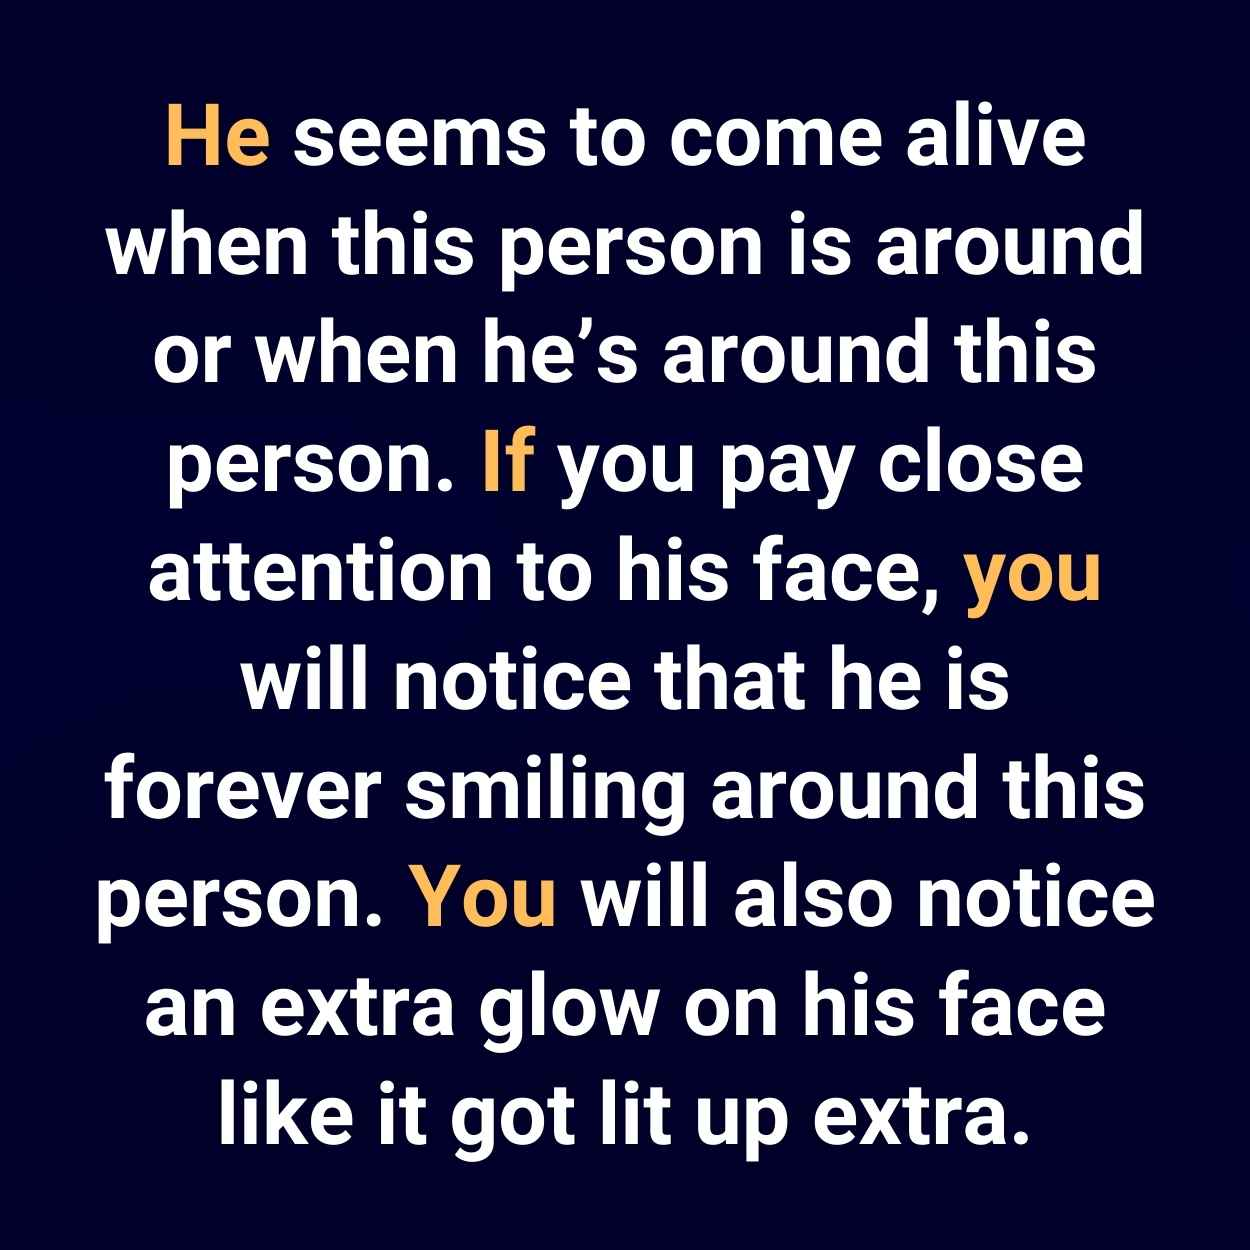 He seems to come alive when this person is around or when he's around this person. If you pay close attention to his face, you will notice that he is forever smiling around this person. You will also notice an extra glow on his face like it got lit up extra.